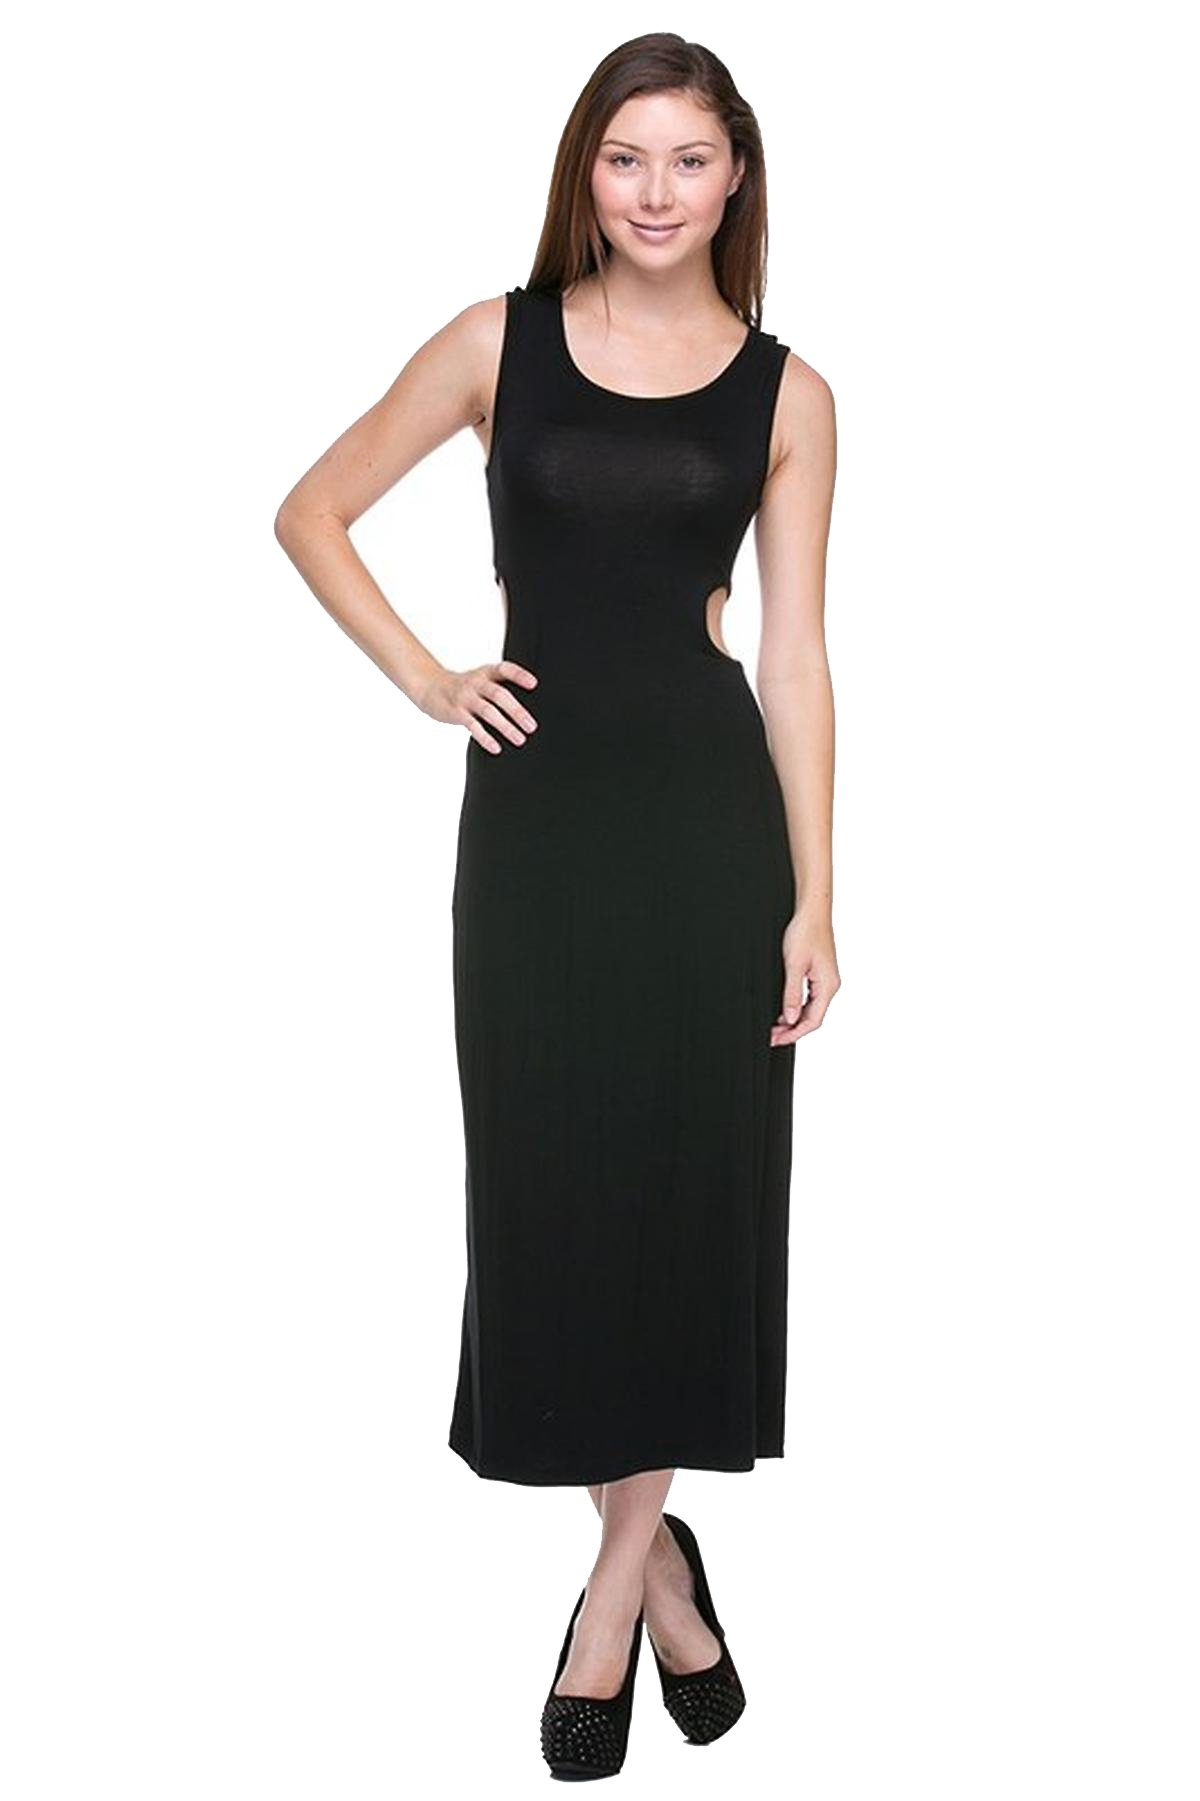 G2 Chic Women's Maxi Dress with Open Back